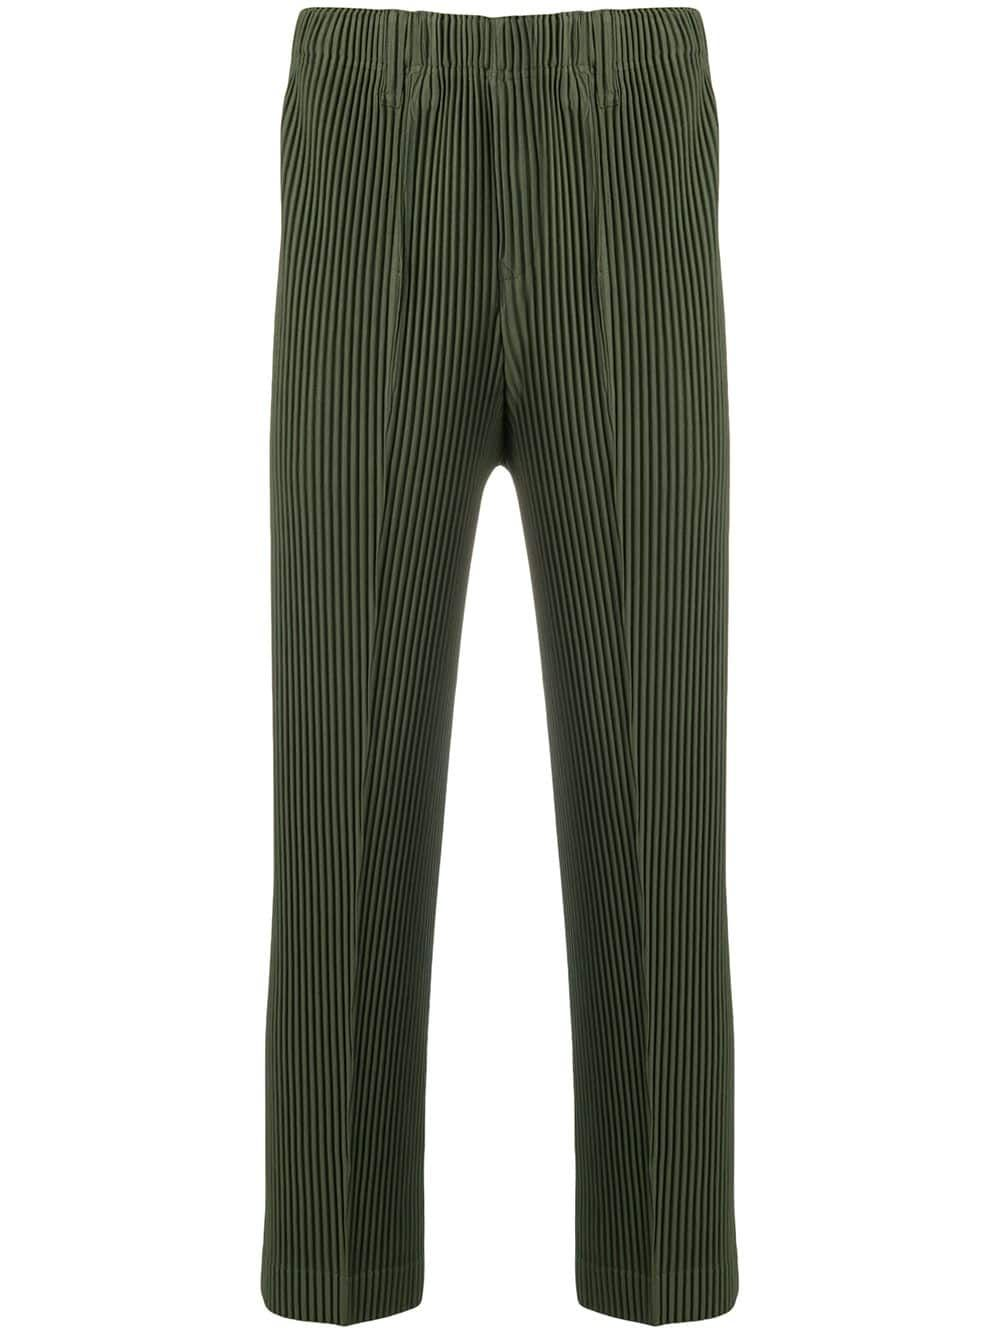 e55867466a9 HOMME PLISSE ISSEY MIYAKE HOMME PLISSÉ ISSEY MIYAKE PLEATED CROPPED  TROUSERS - GREEN.  hommeplisseisseymiyake  cloth